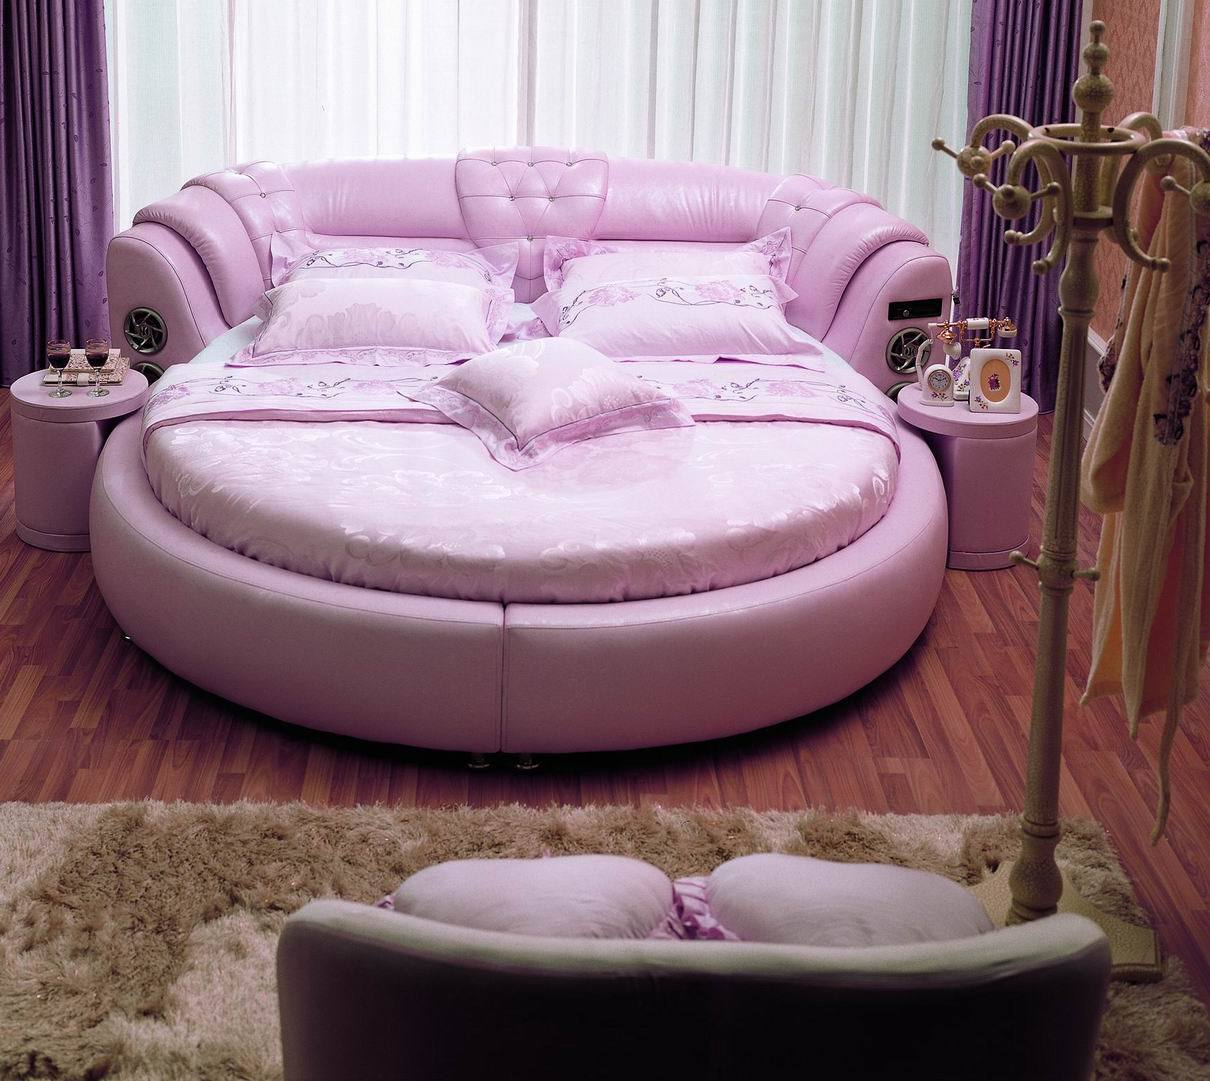 Rundes Bett The Bedroom: Round Leather Beds Zinavyopendeza